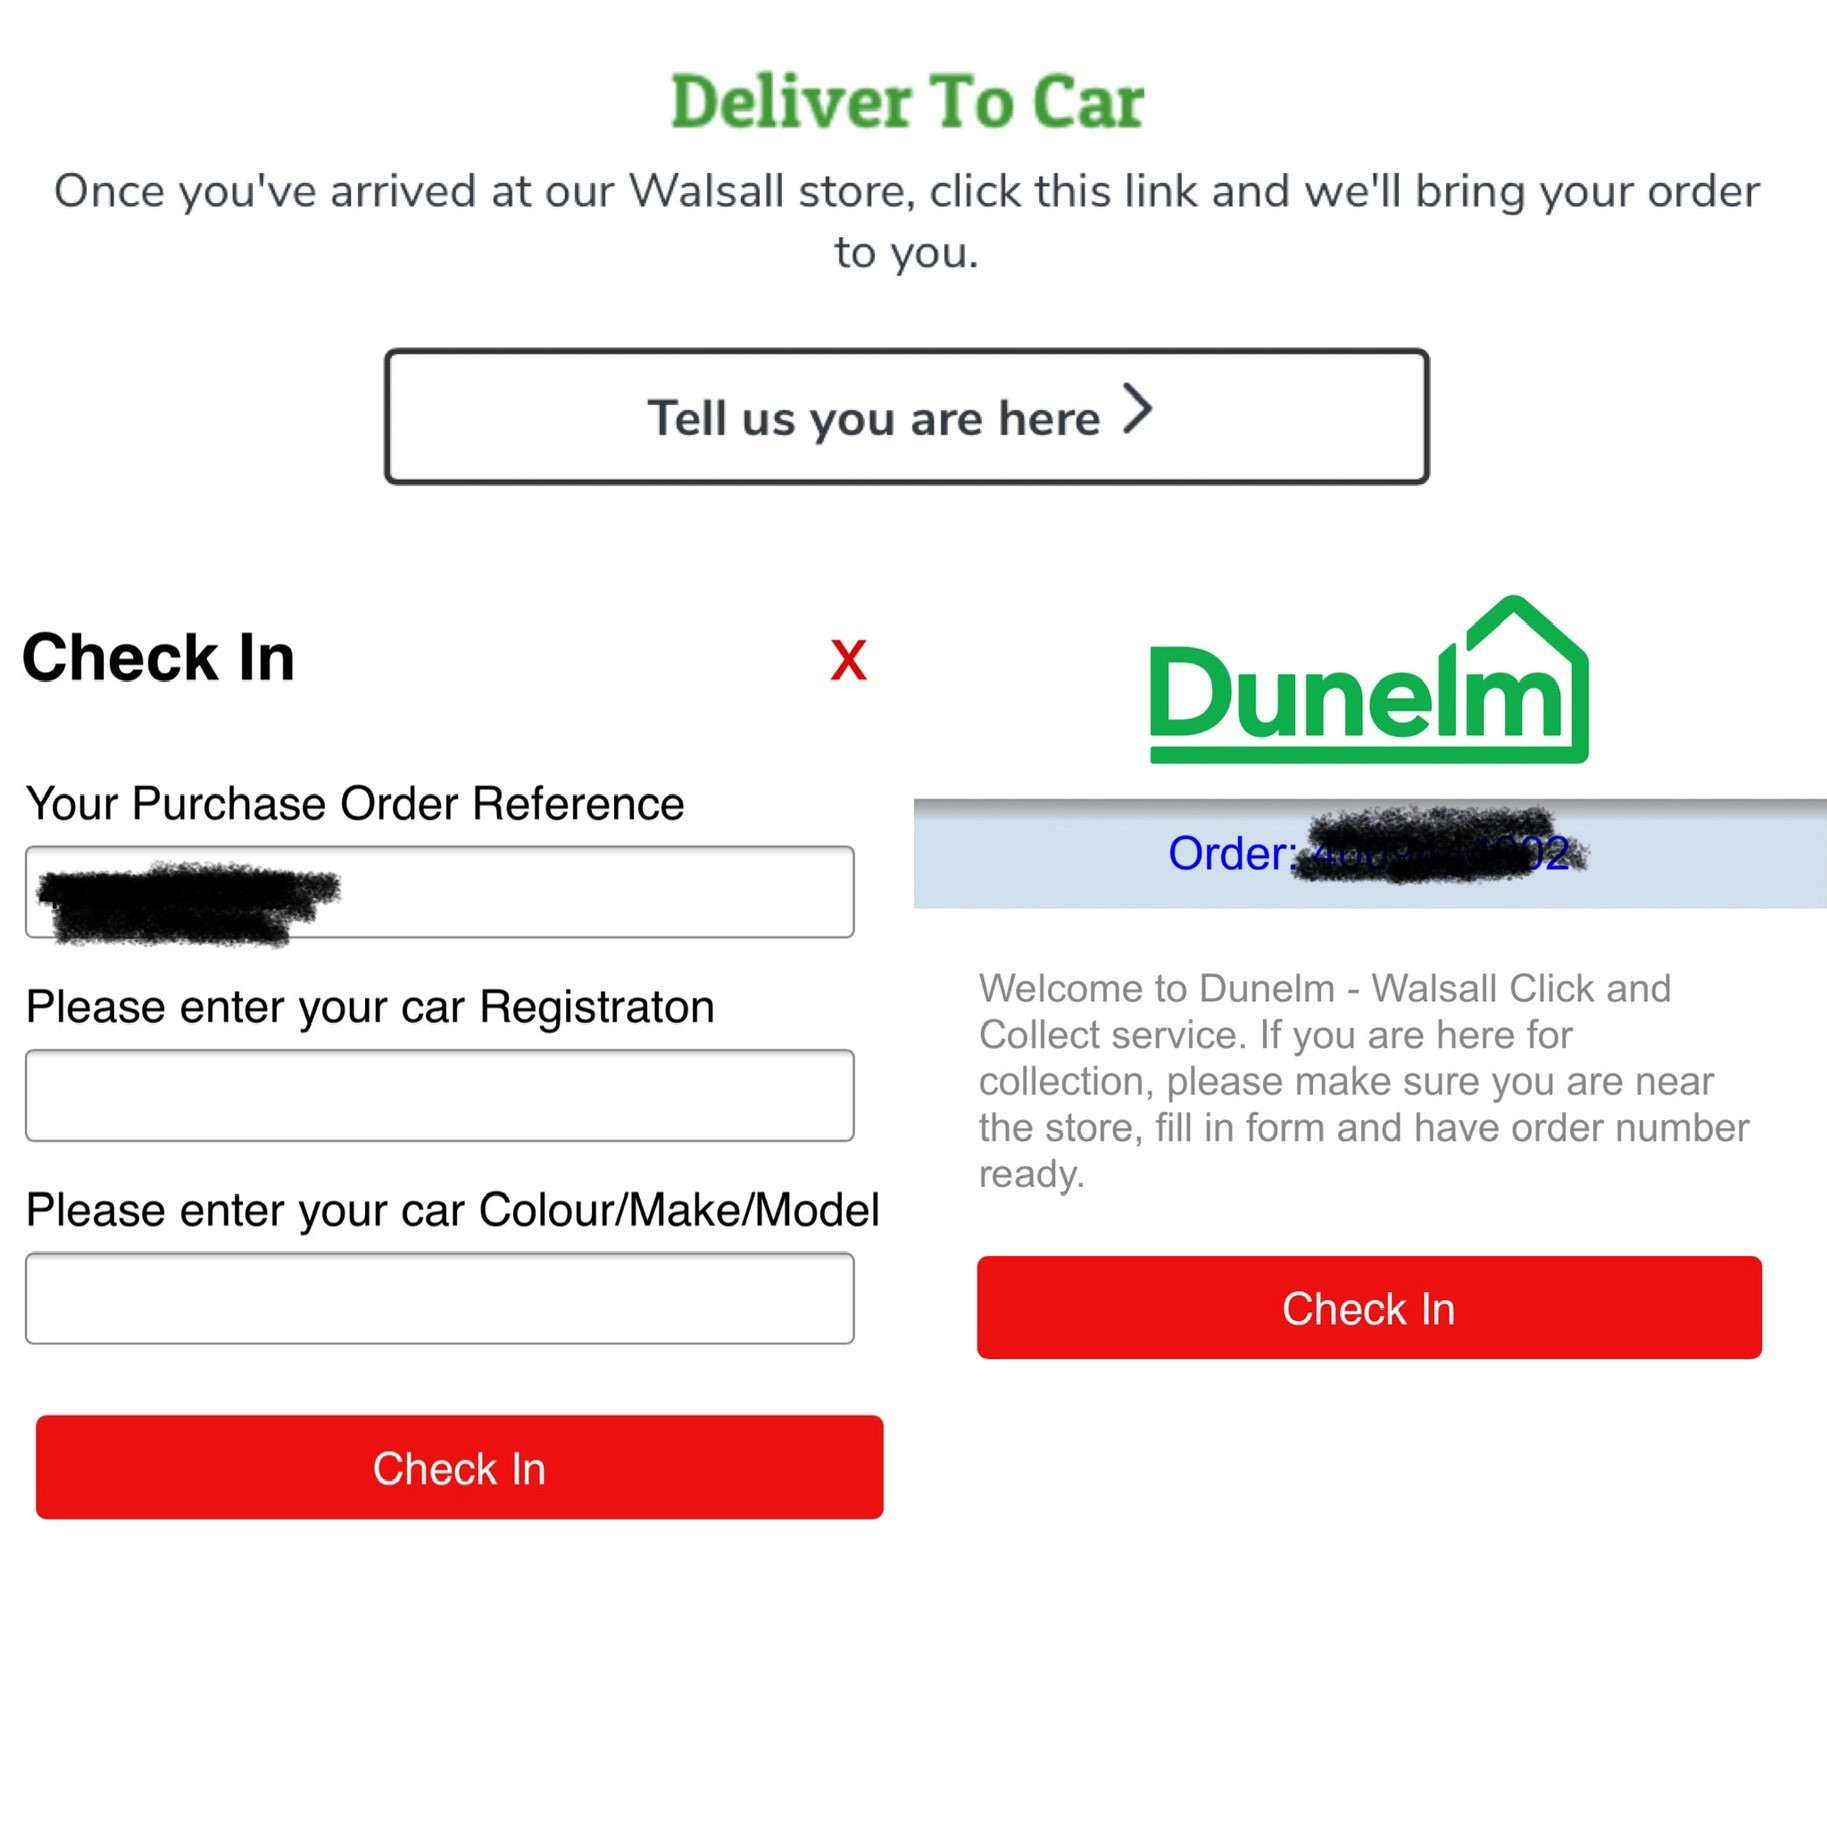 Examples of the email from Dunelm to say deliver to car along with the screens to enter registration number and car make